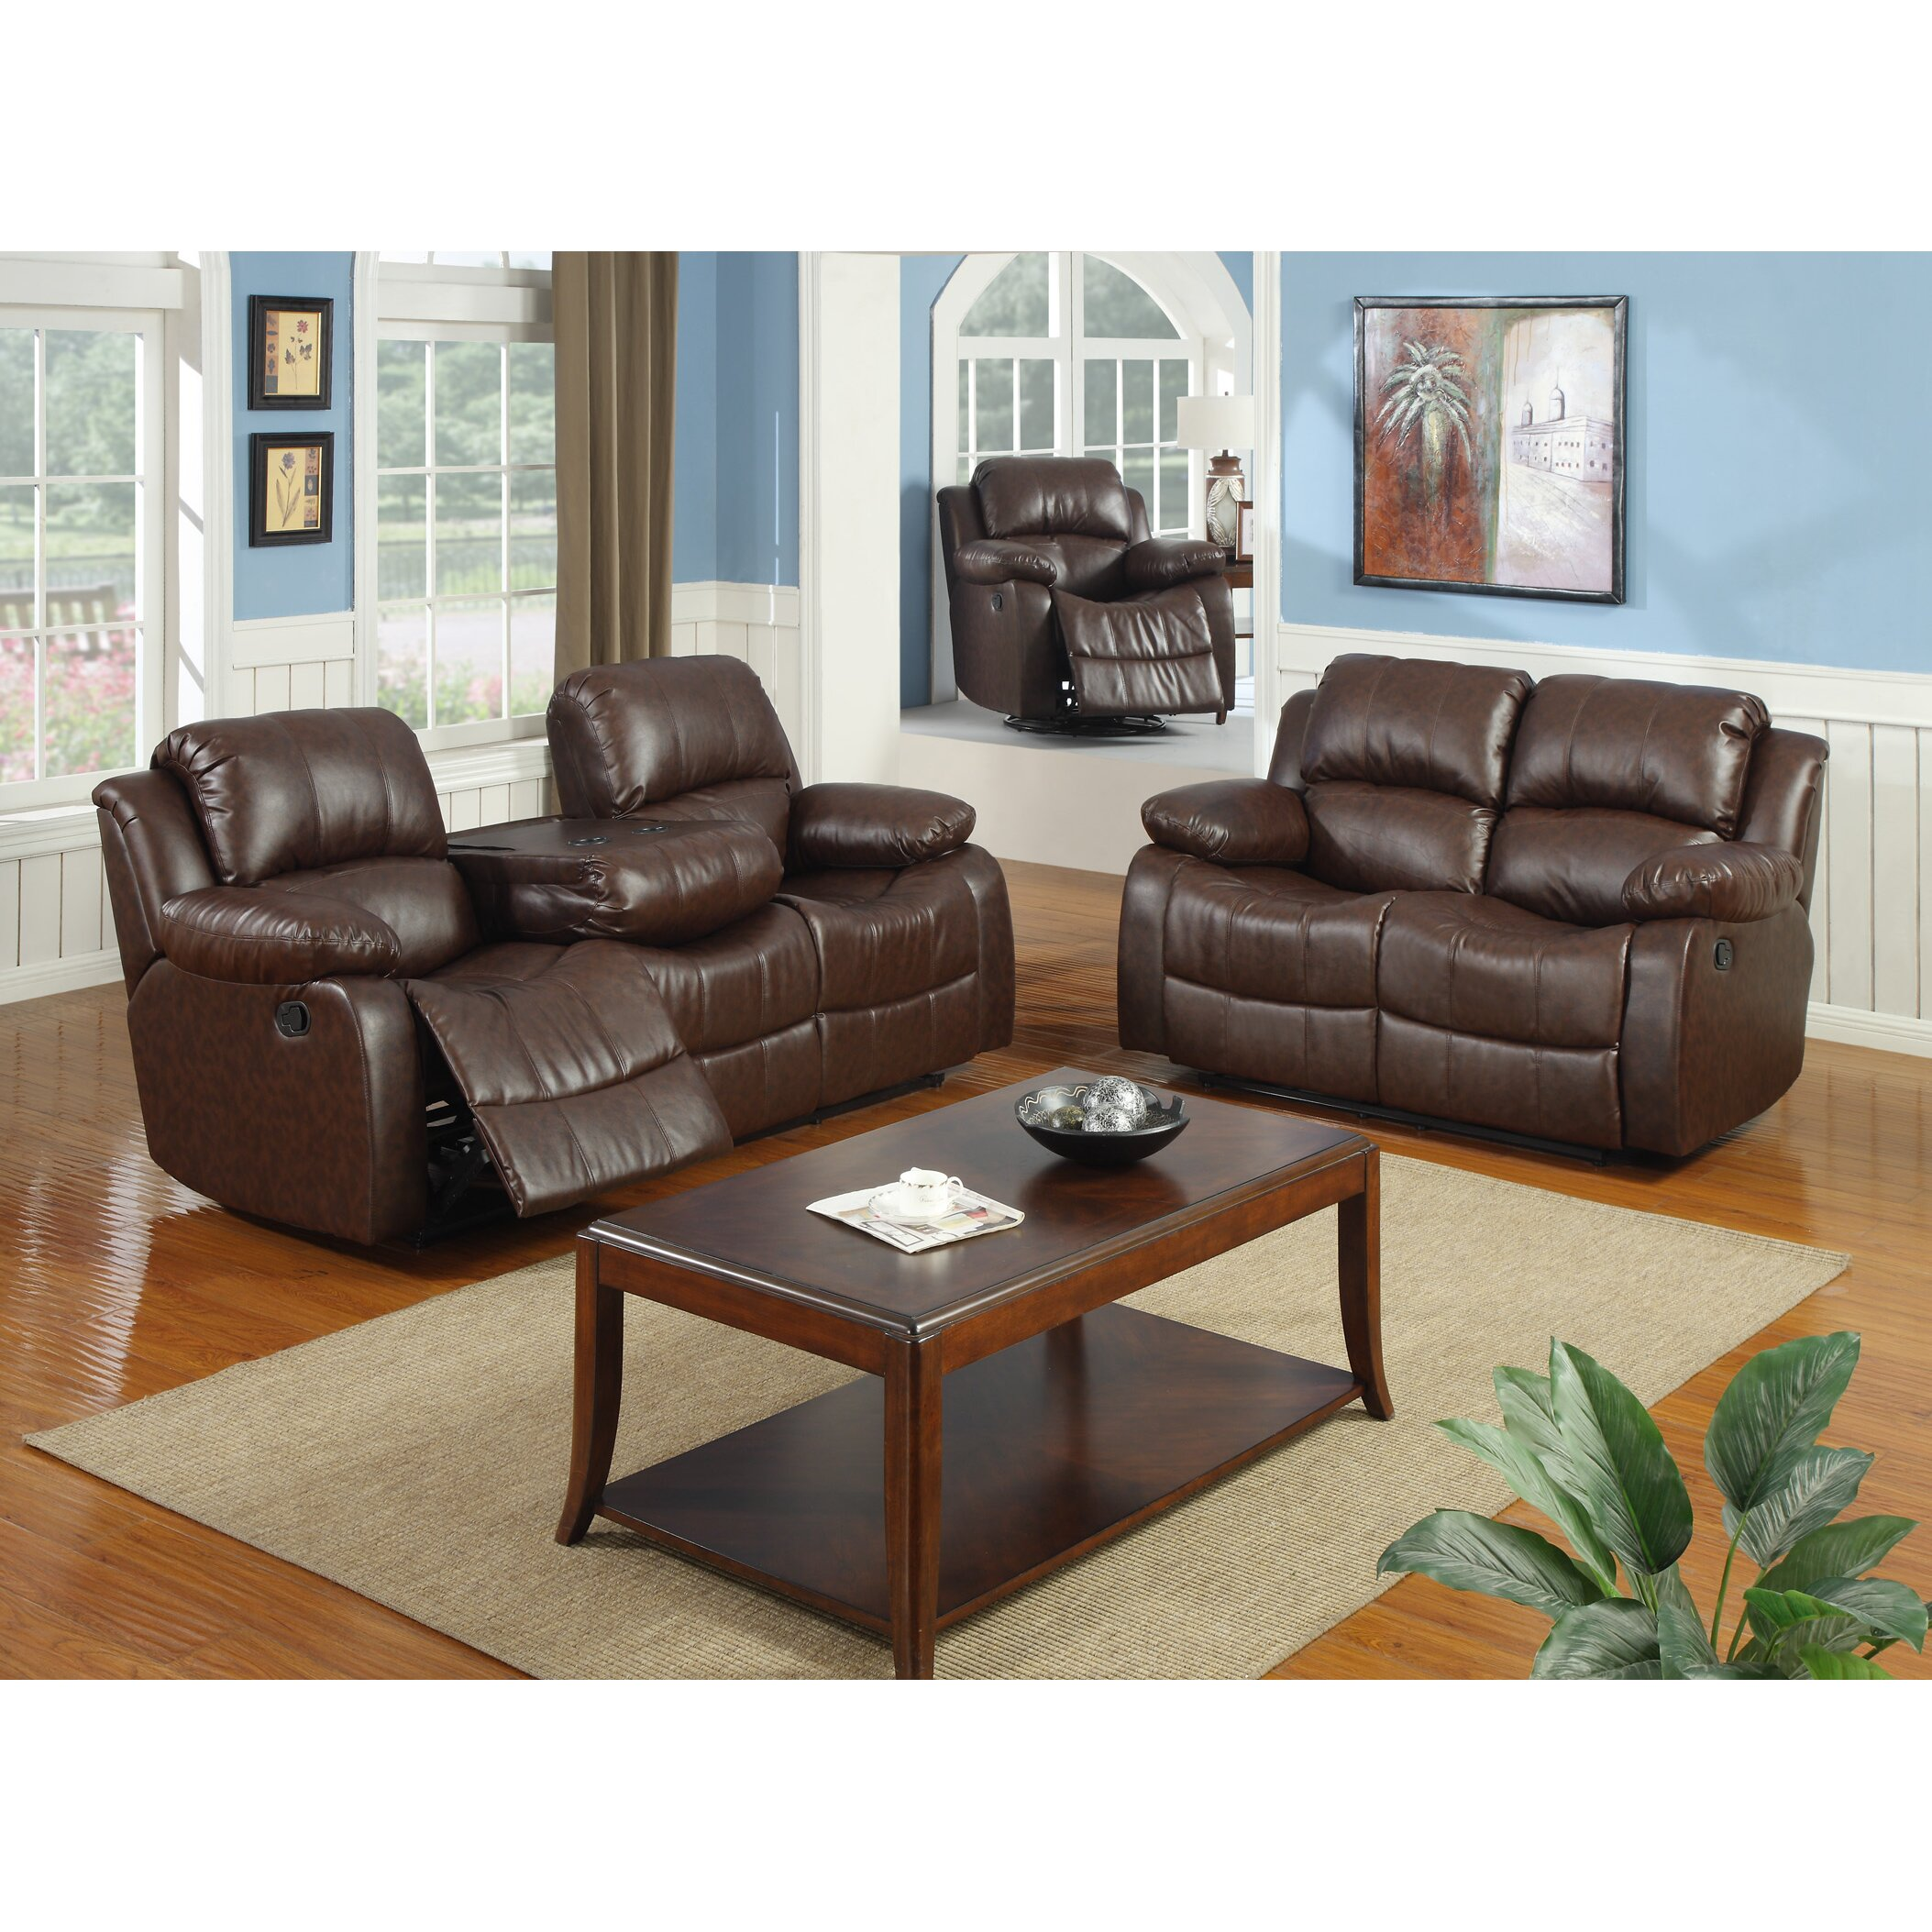 Best quality furniture bonded leather 3 piece recliner for Leather living room sets